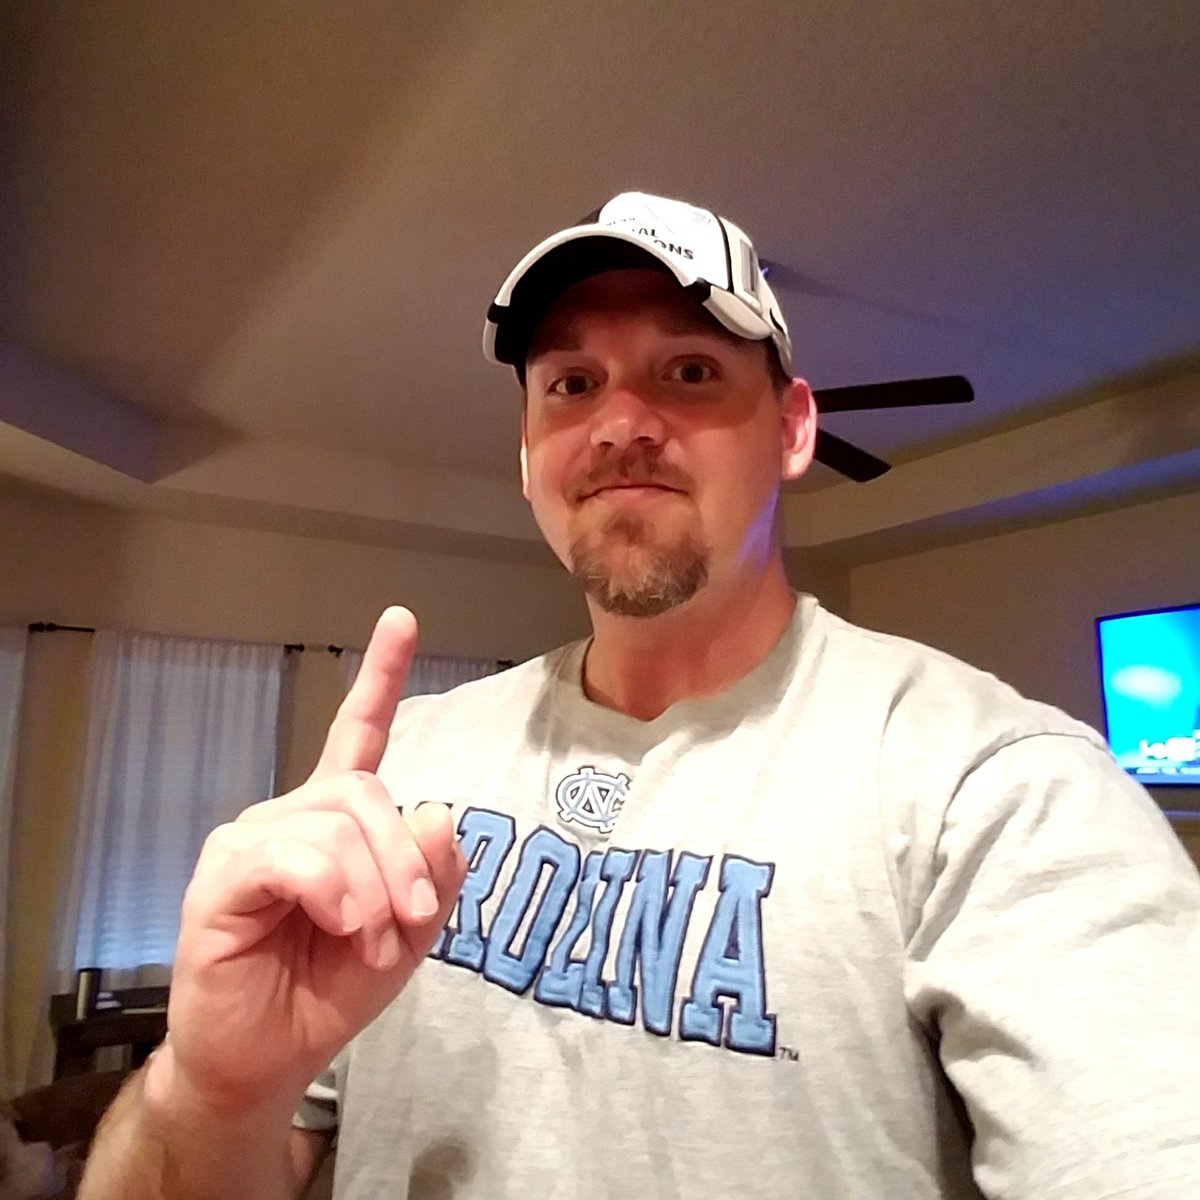 I got into Twitter during Carolina&#39;s Championship run last year. Lucky for me, it brought me in contact with all you badass Bigly fighters. Ty #Resistance . You bring sanity to these crazy ass times we are living in. #VeteransResist #GoHeels <br>http://pic.twitter.com/uHvixdk9vK